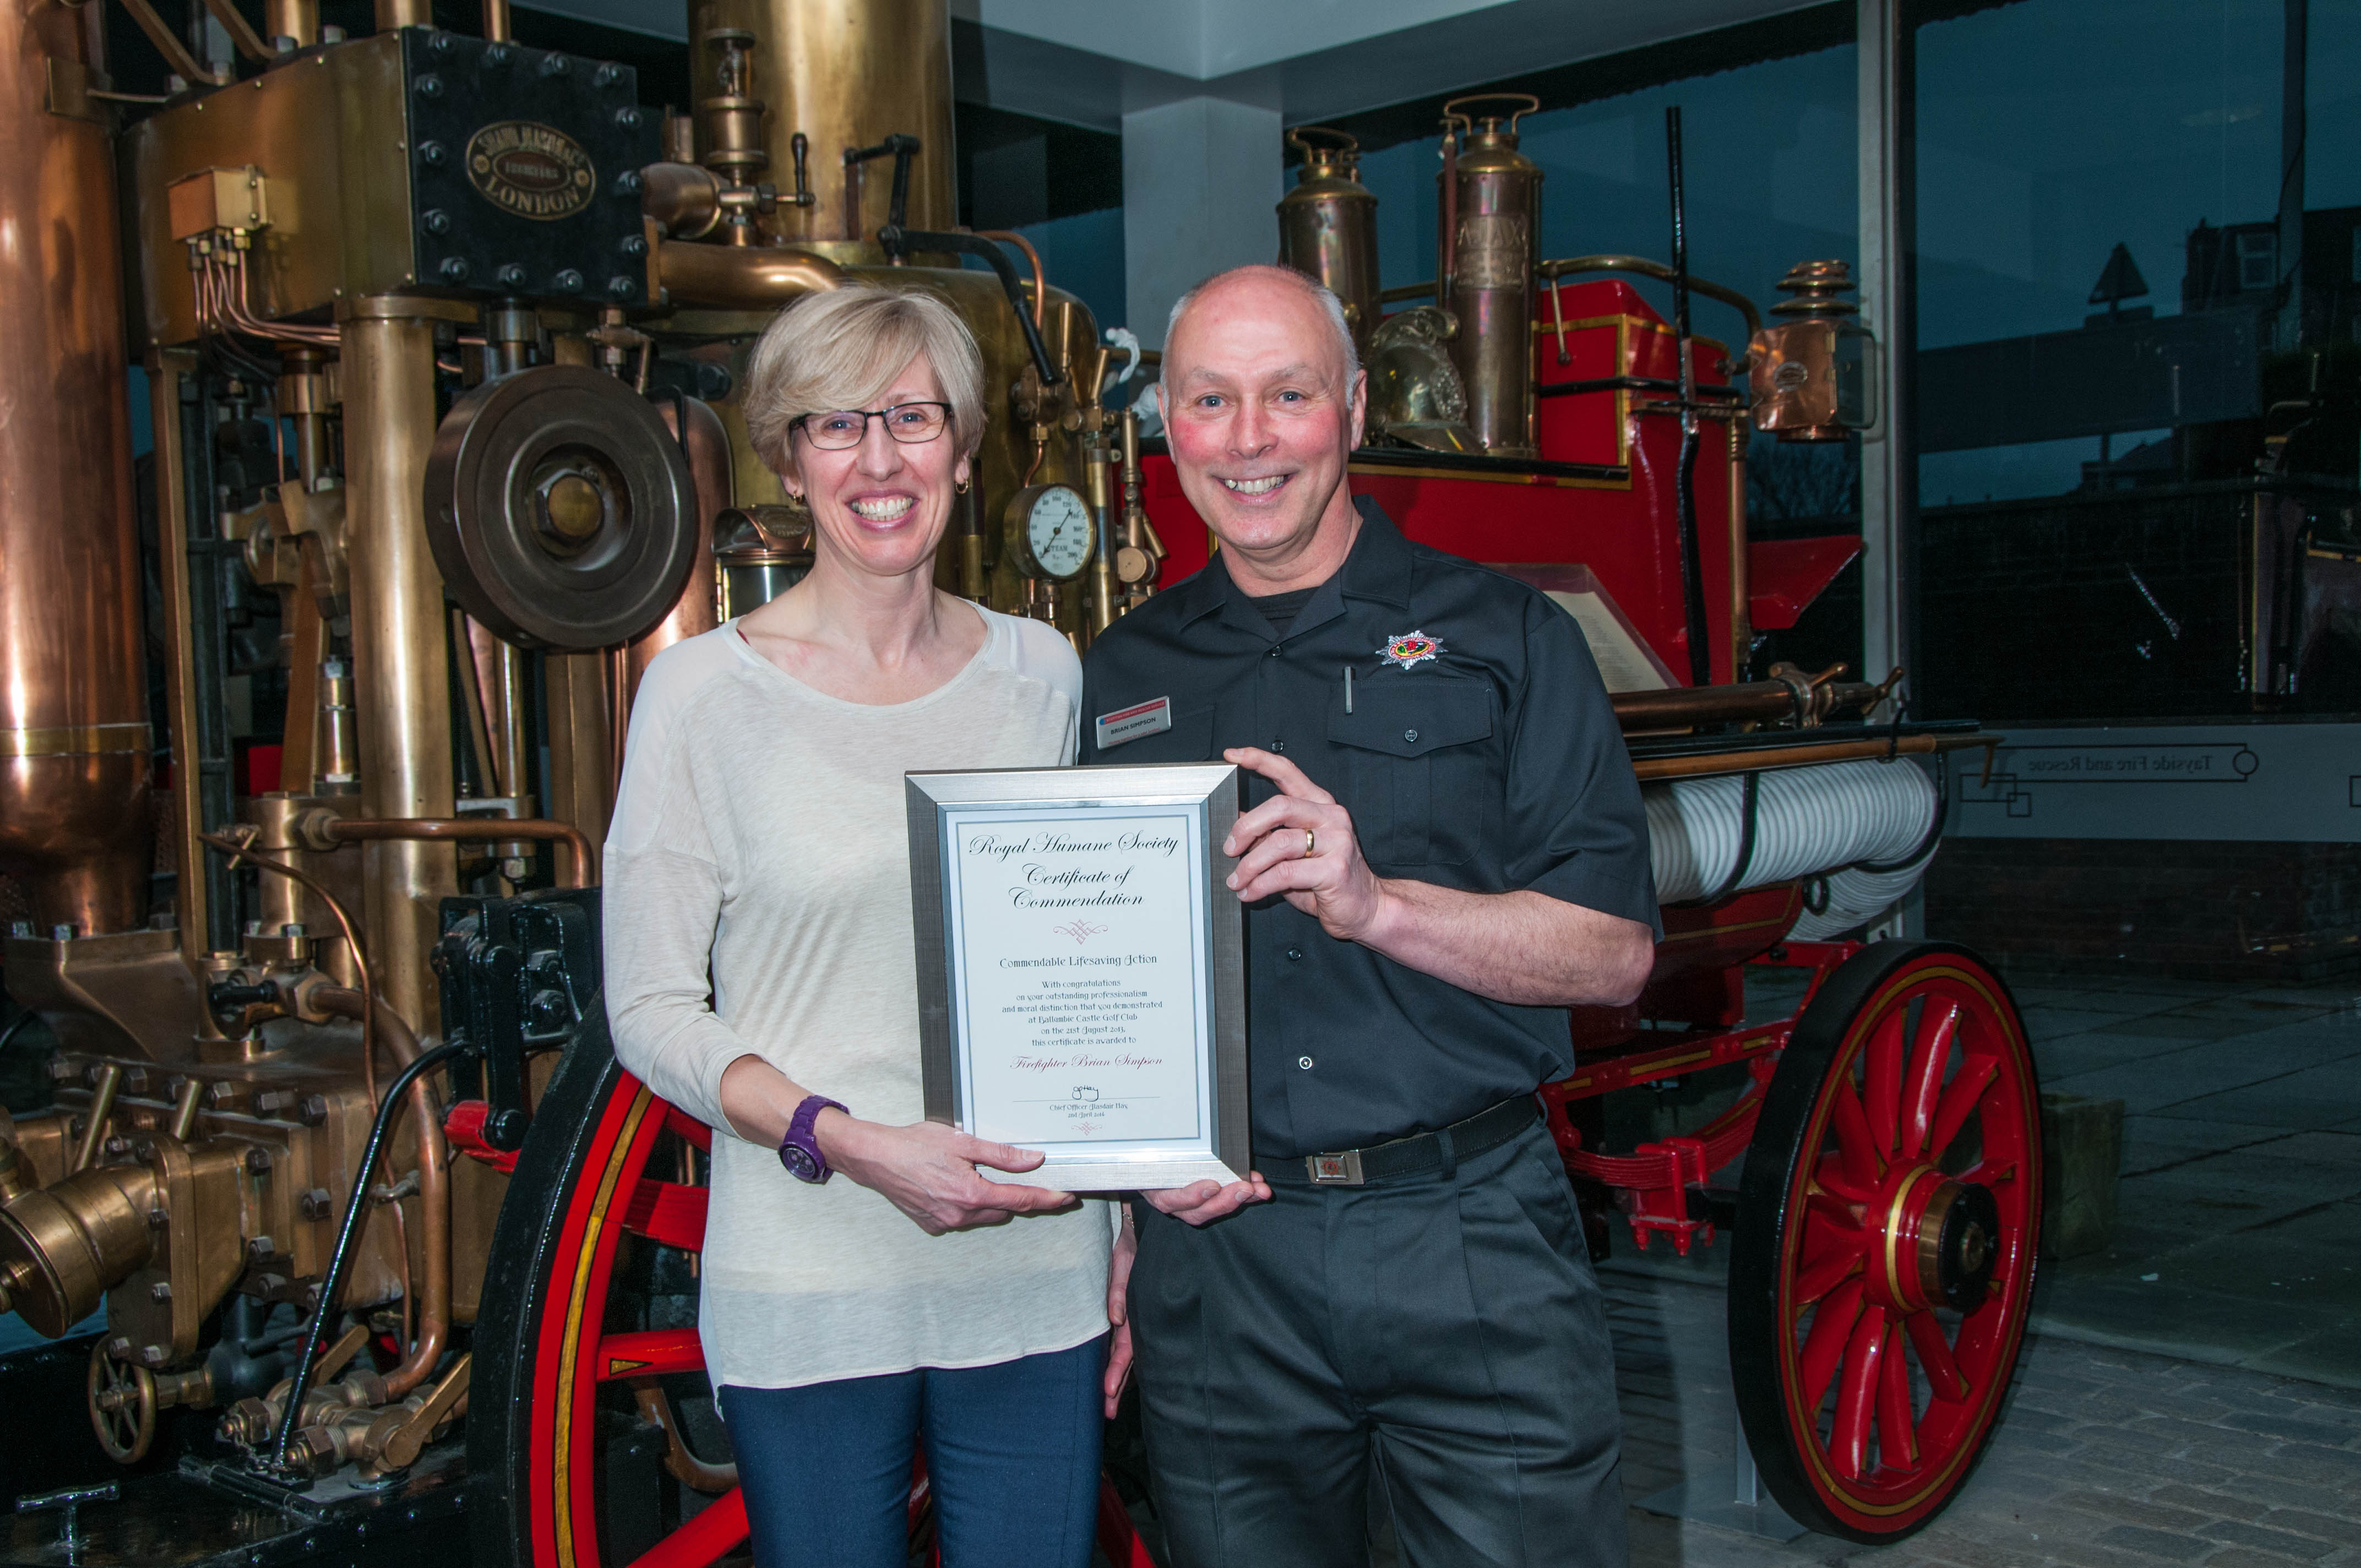 Dundee firefighter honoured after saving man's life